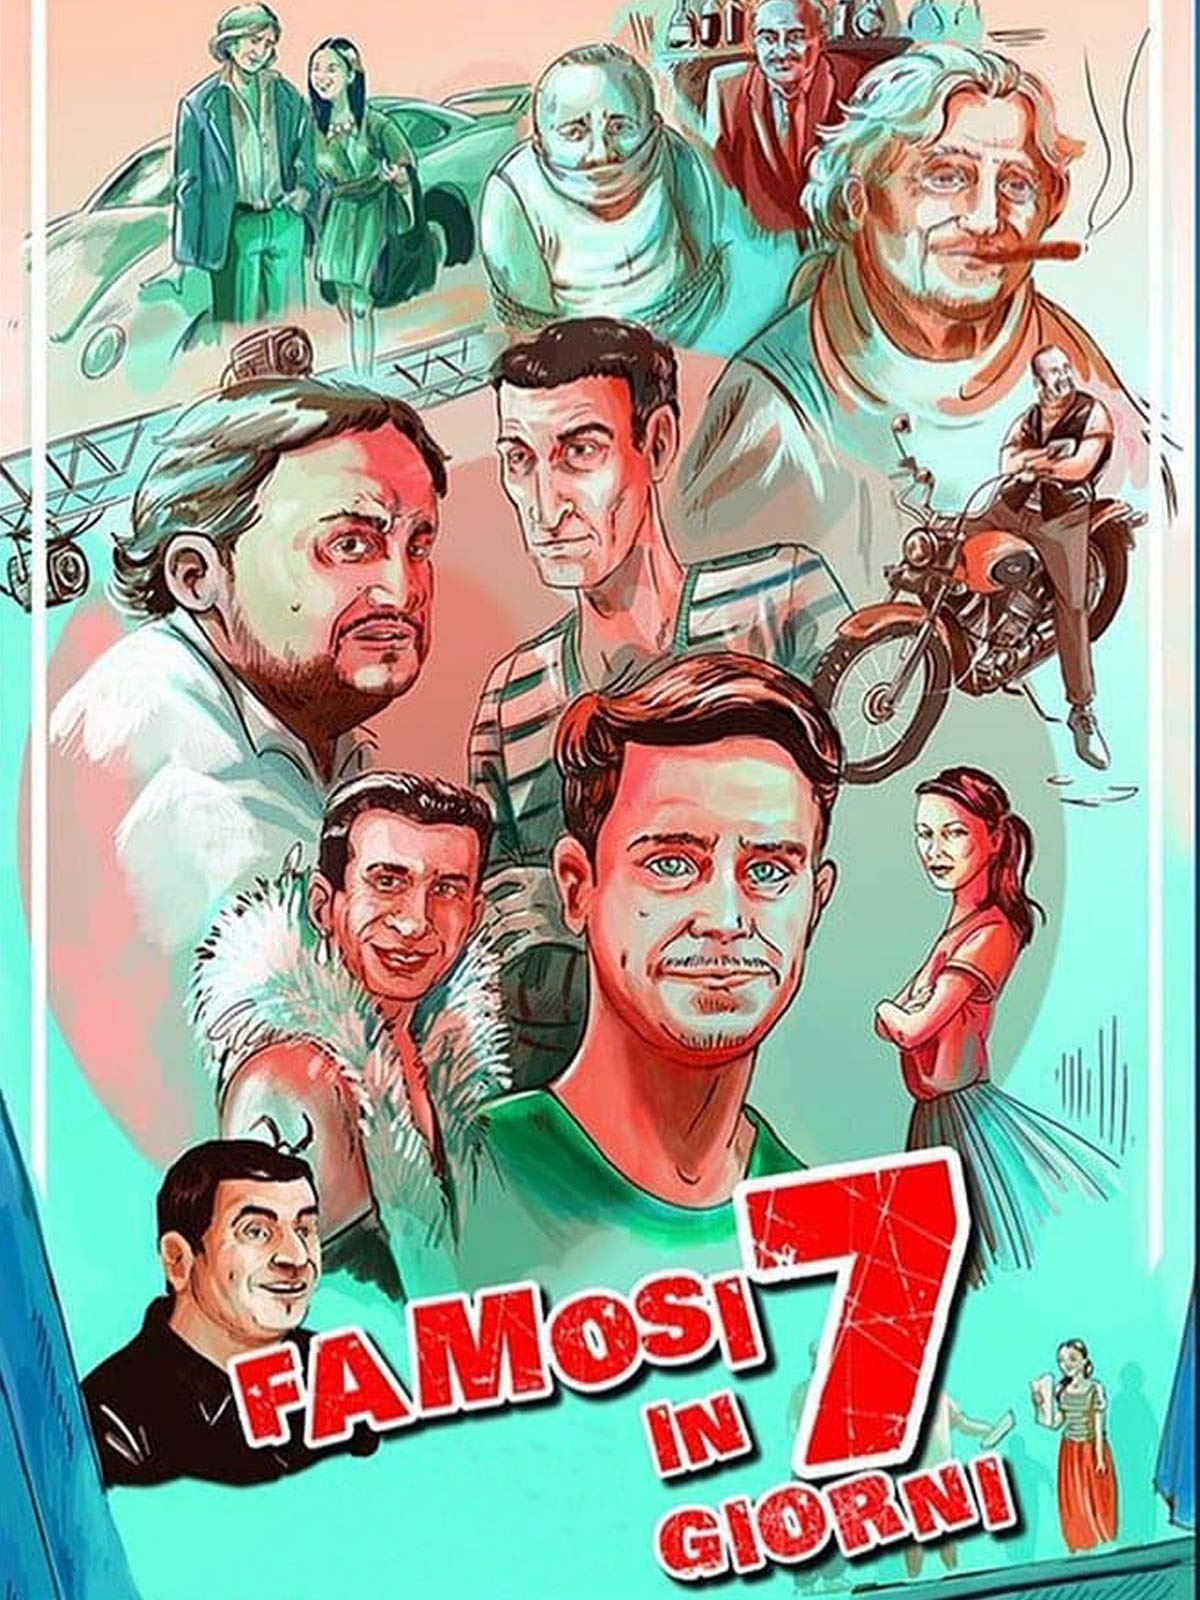 Famous in 7 days on Amazon Prime Video UK